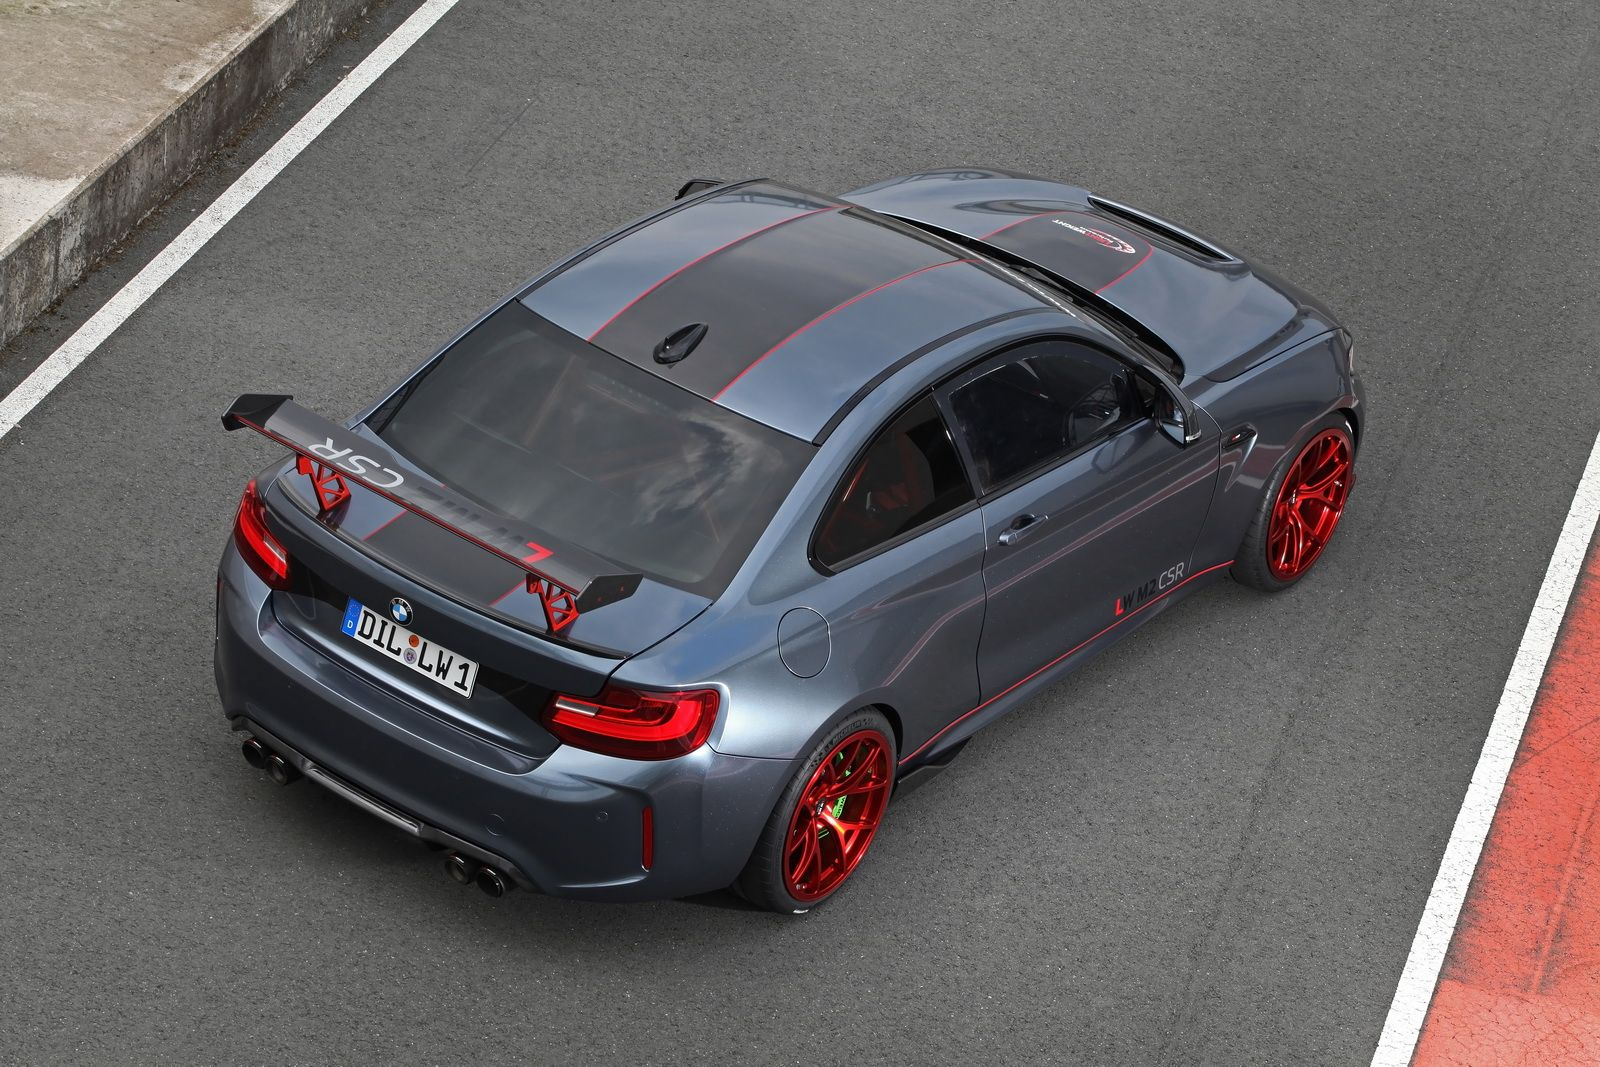 BMW M2 CSR Gets A 590HP S55 Motor The idea of placing an S55 engine